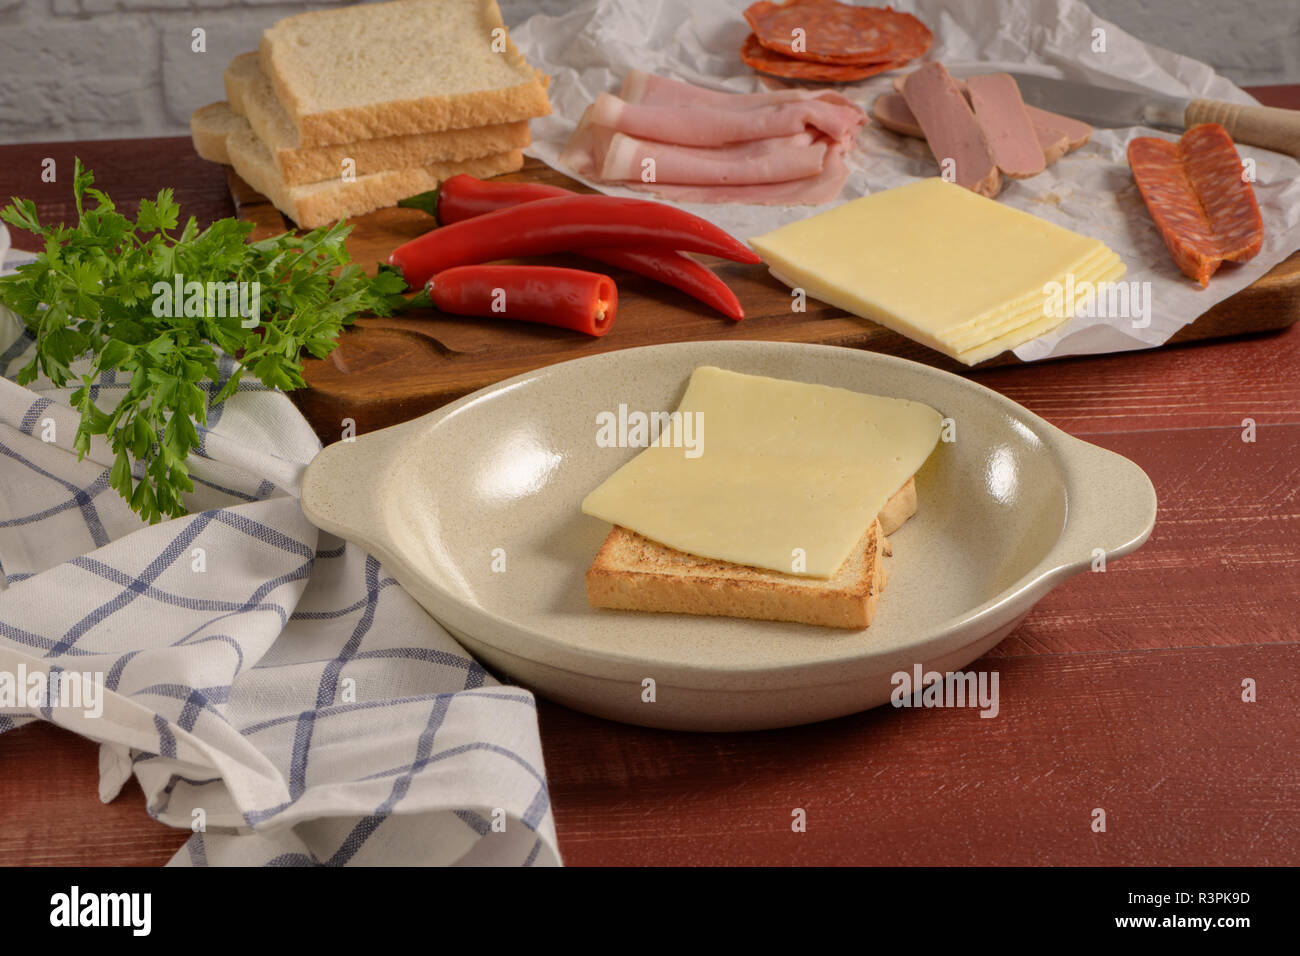 Ingredients preparations of traditional Portuguese snack food. Francesinha sandwich of bread, cheese, pork, ham, sausages. On table. Stock Photo